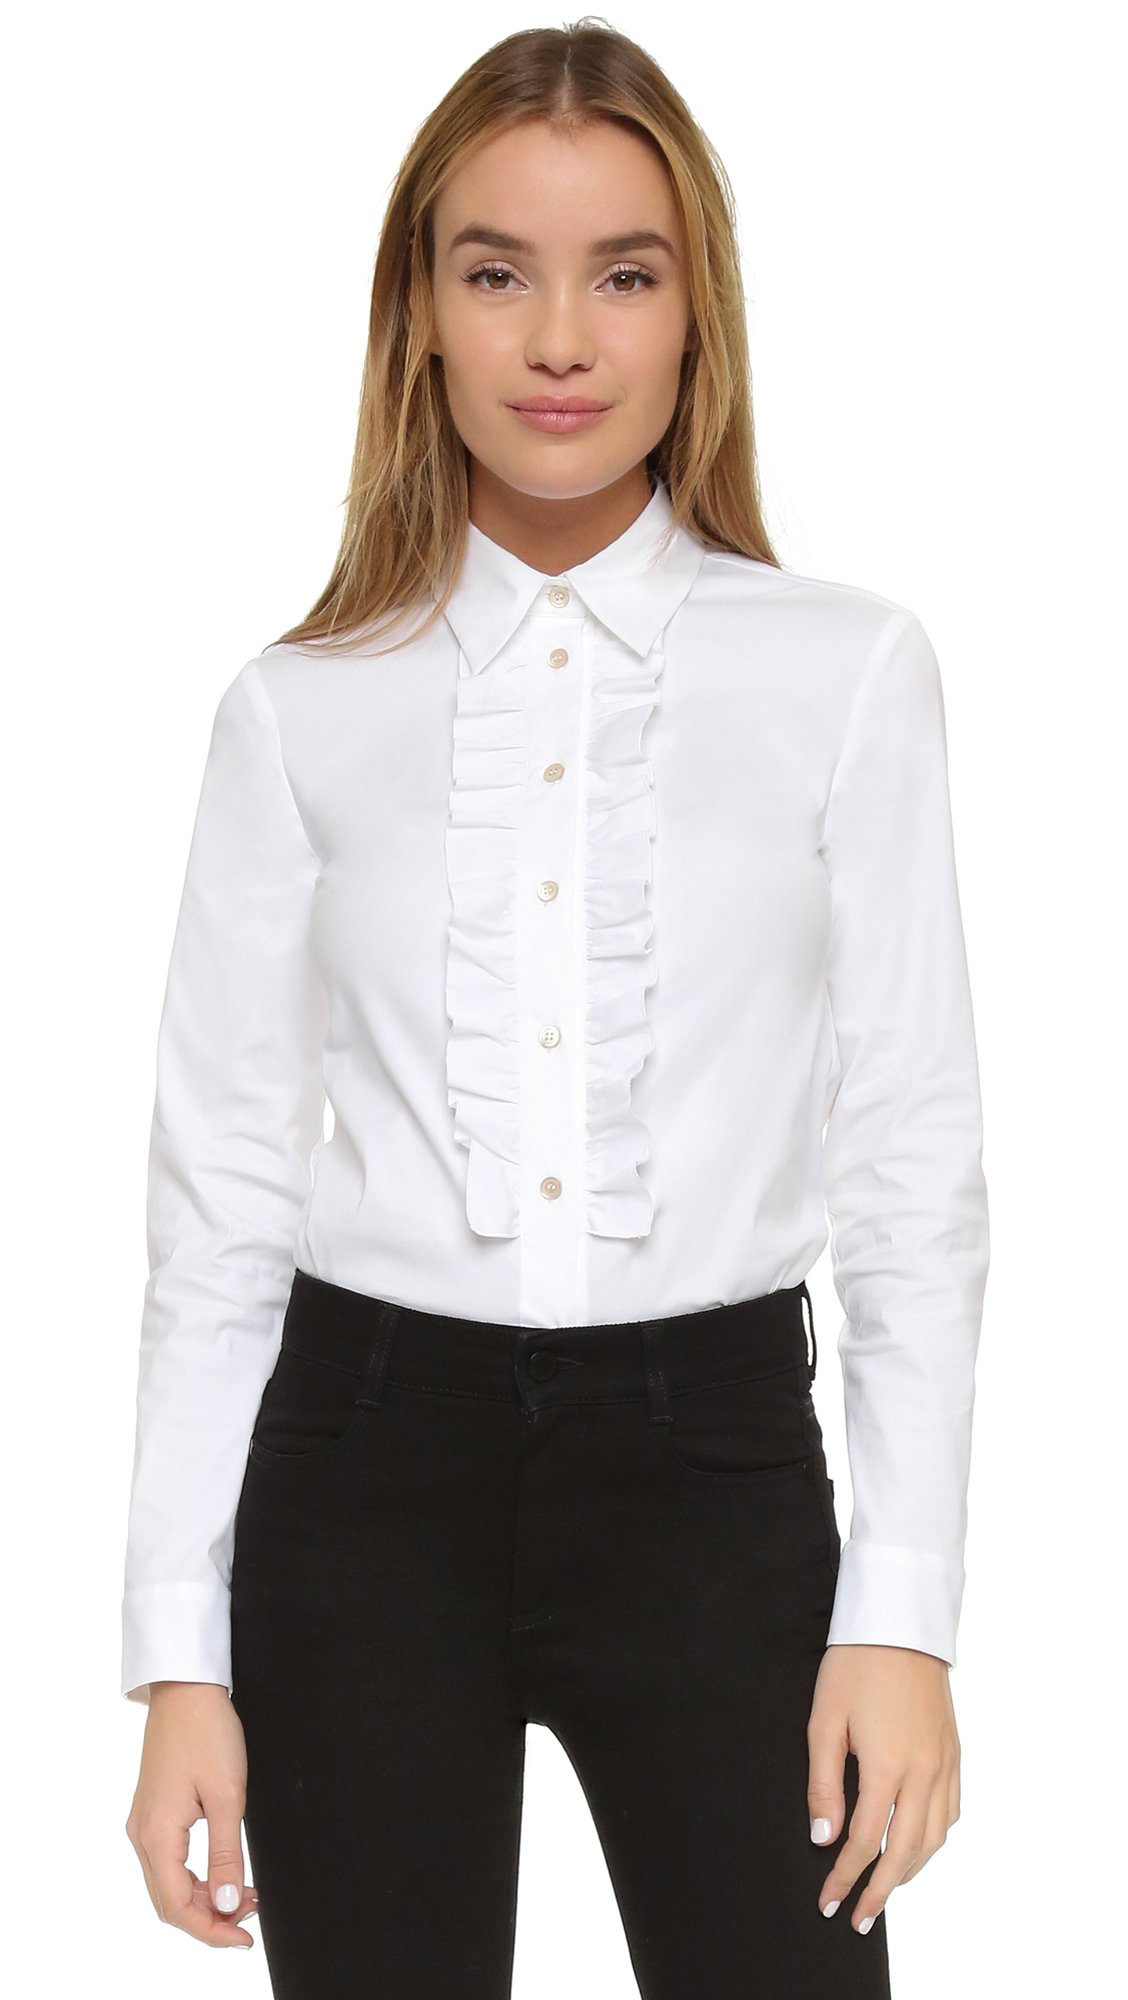 Womens White Ruffle Blouse 65